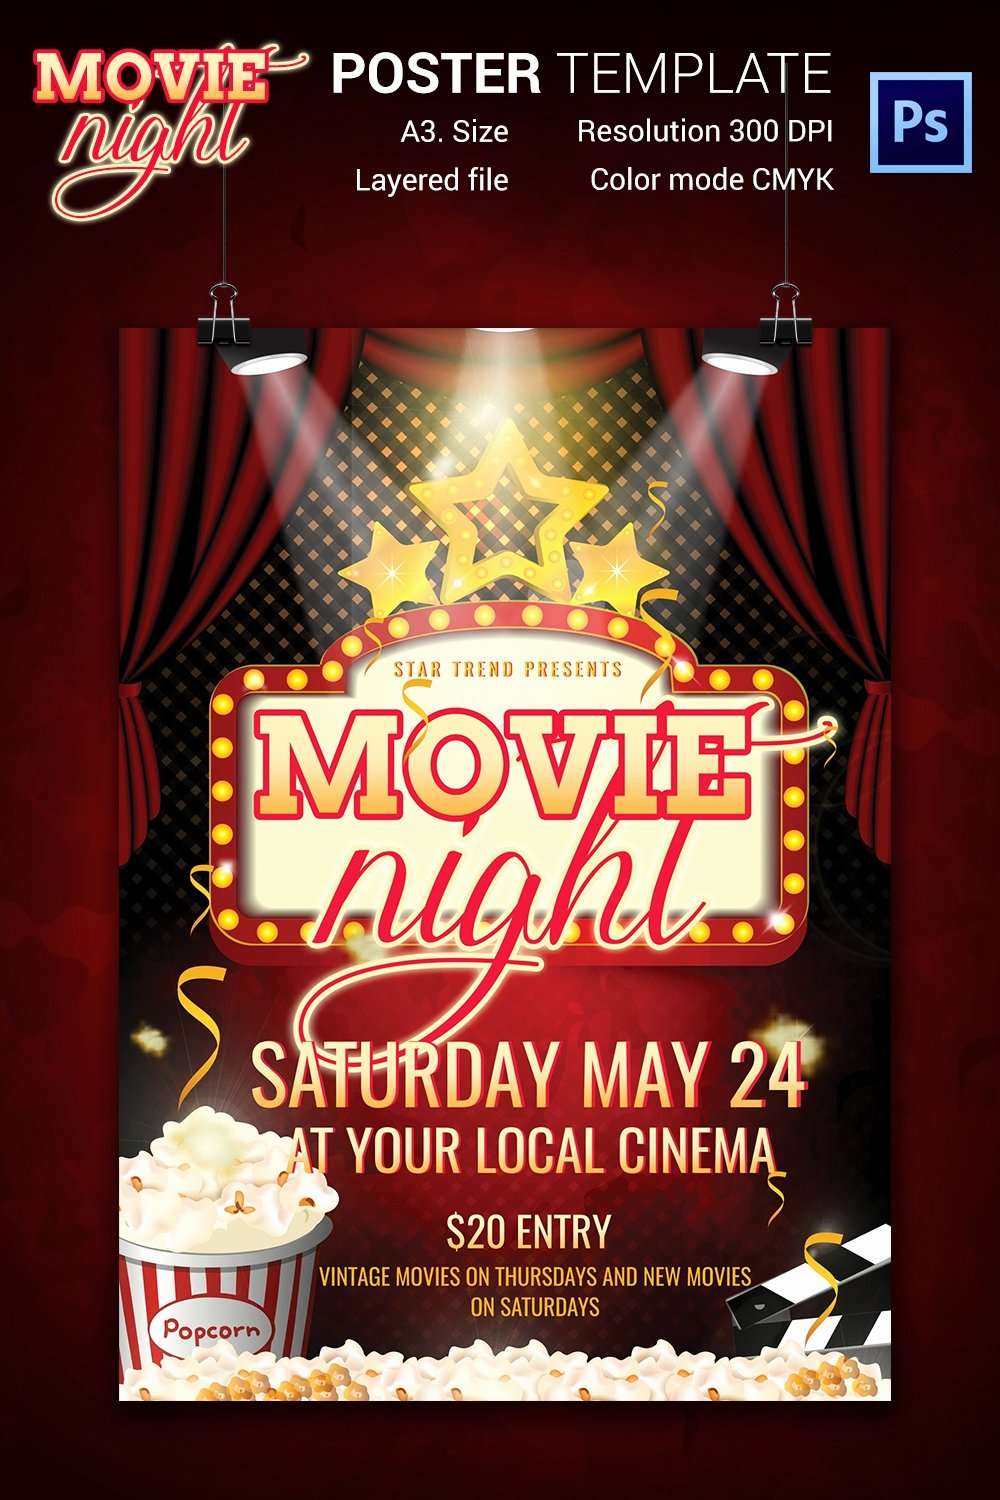 Free Movie Night Flyer Template Beautiful Movie Night Flyer Template 25 Free Jpg Psd format